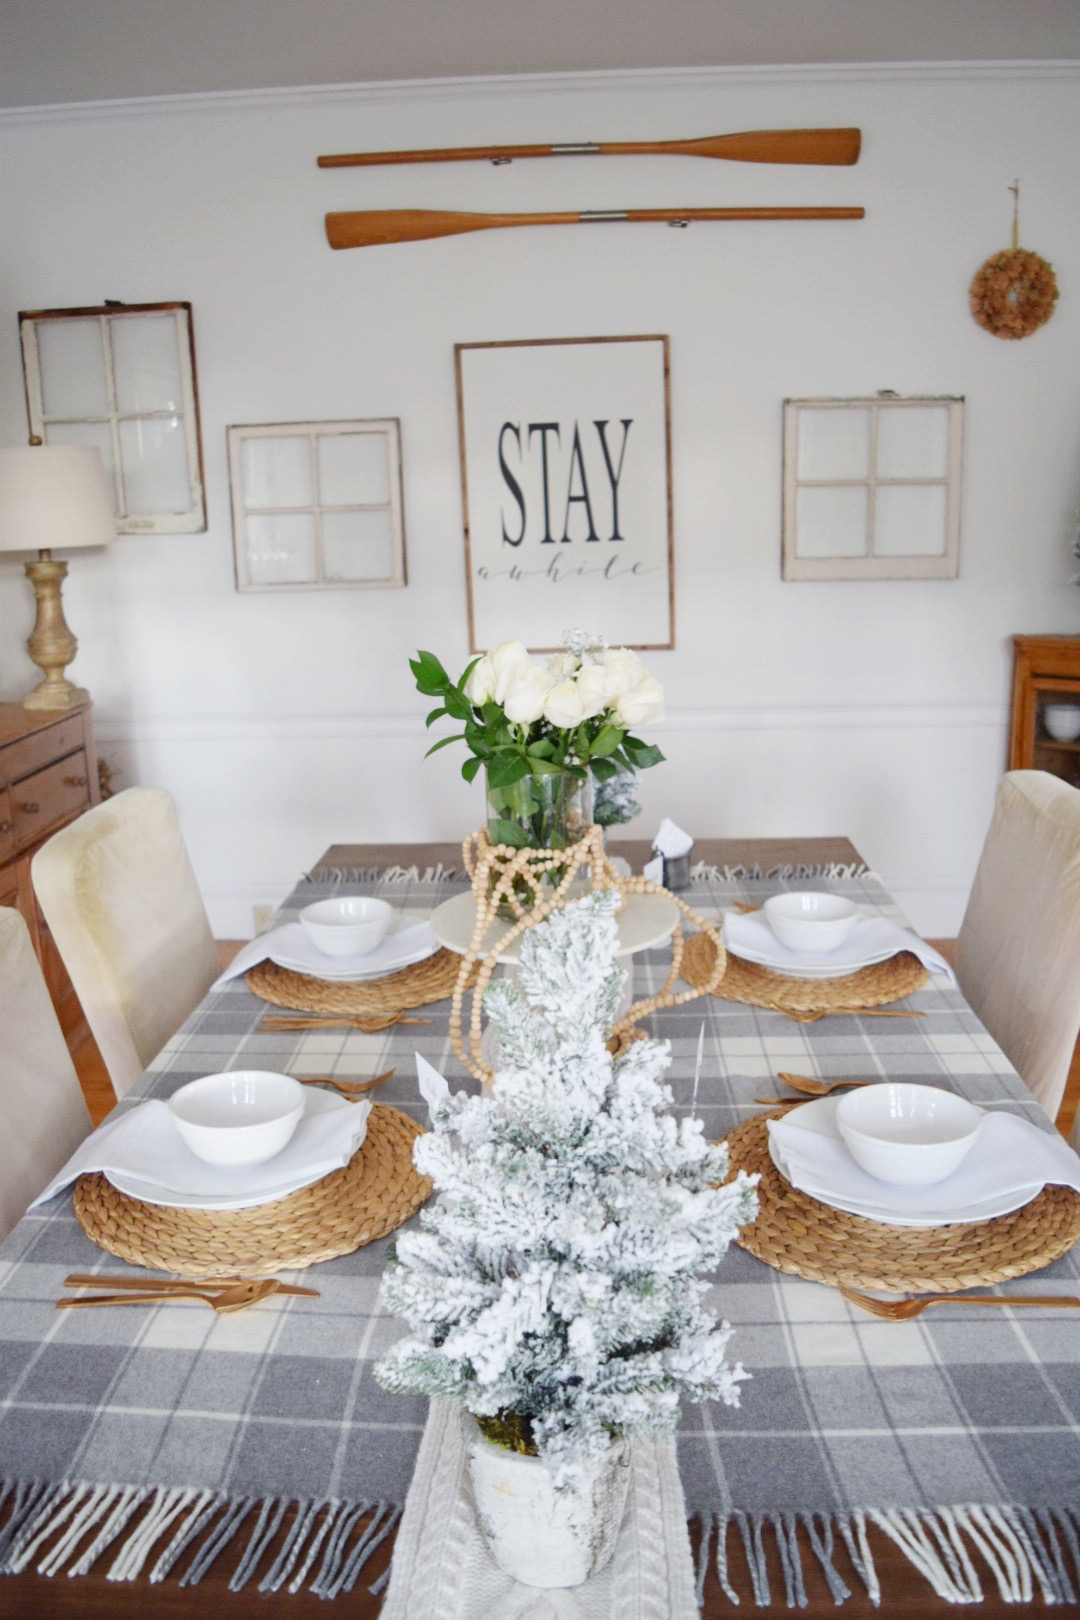 Eat, Drink and Be Merry-A Blog Hop Progressive Dinner